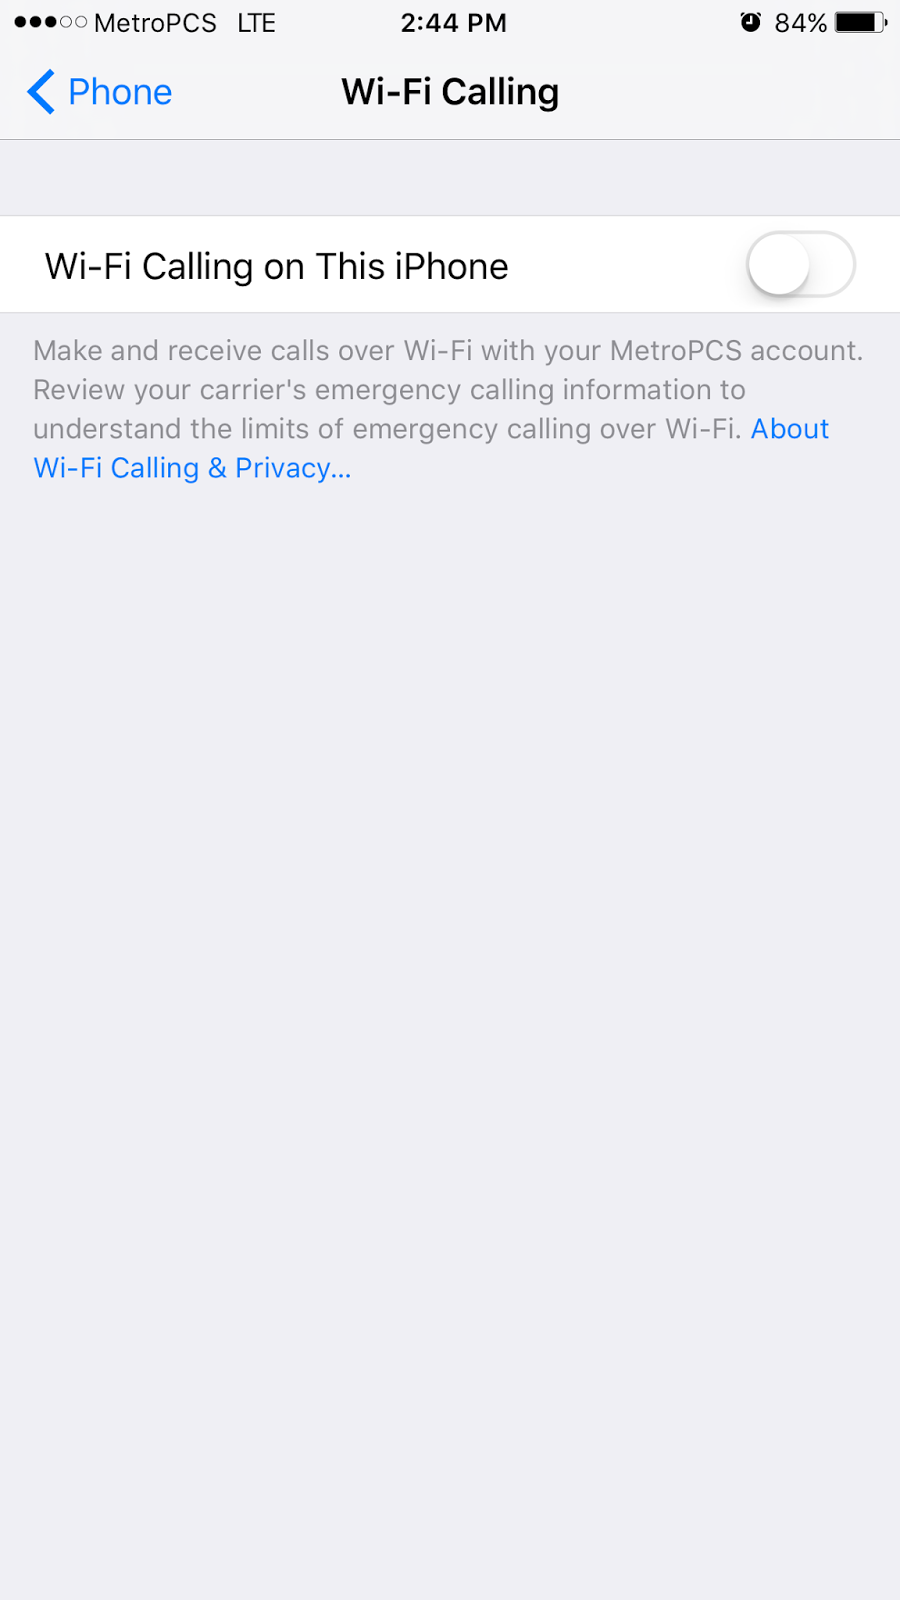 how to enable wi fi calling on iphone metropcs detailizer step 4 toggle wi fi calling on this phone